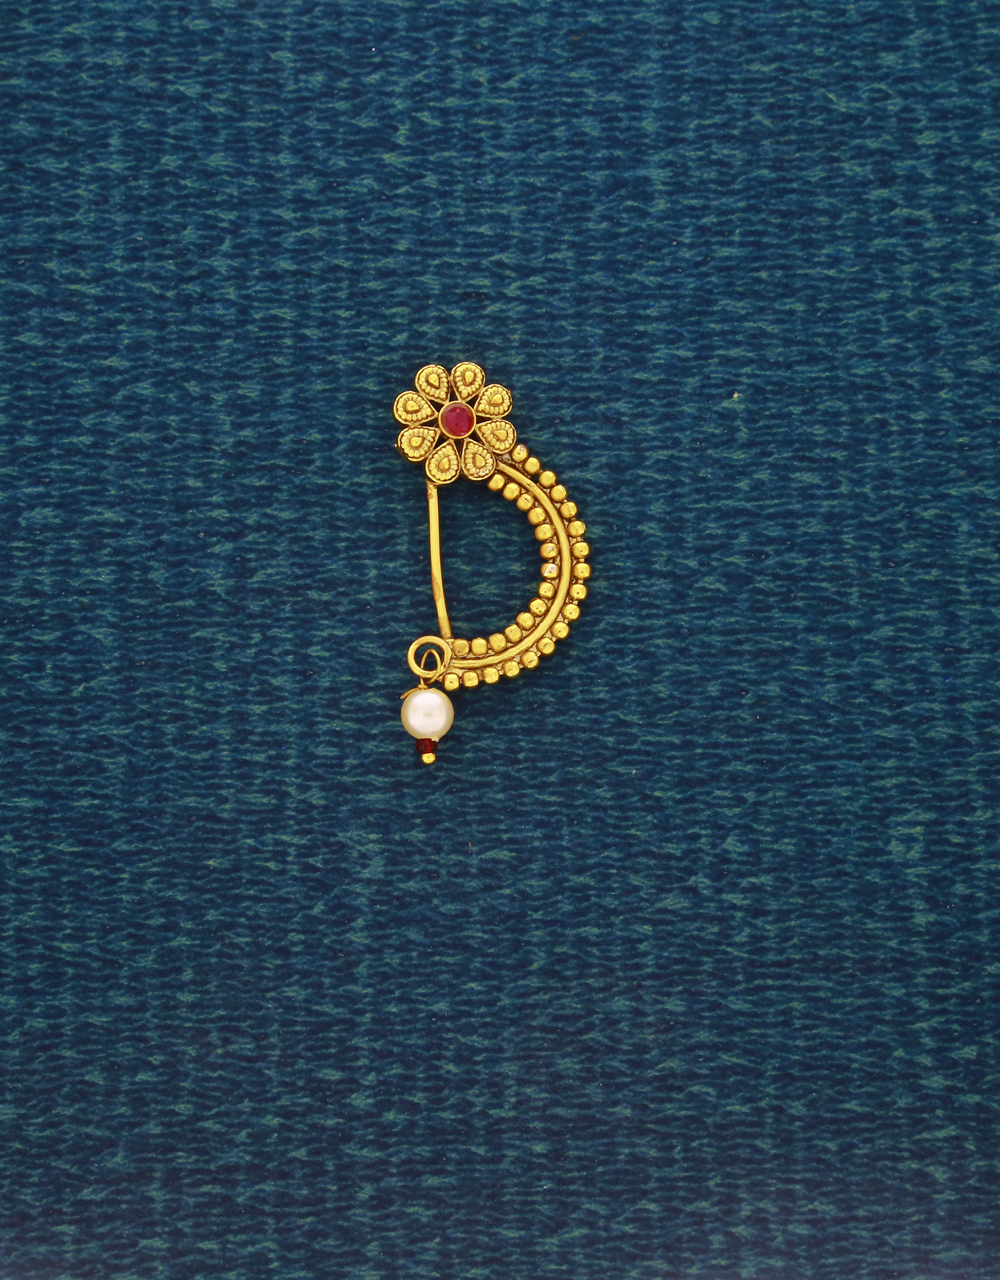 Gold Finish Flower Styled Traditional Nath |Clip On Nath | Pressing Nath For Women & Girls[Press Nath]